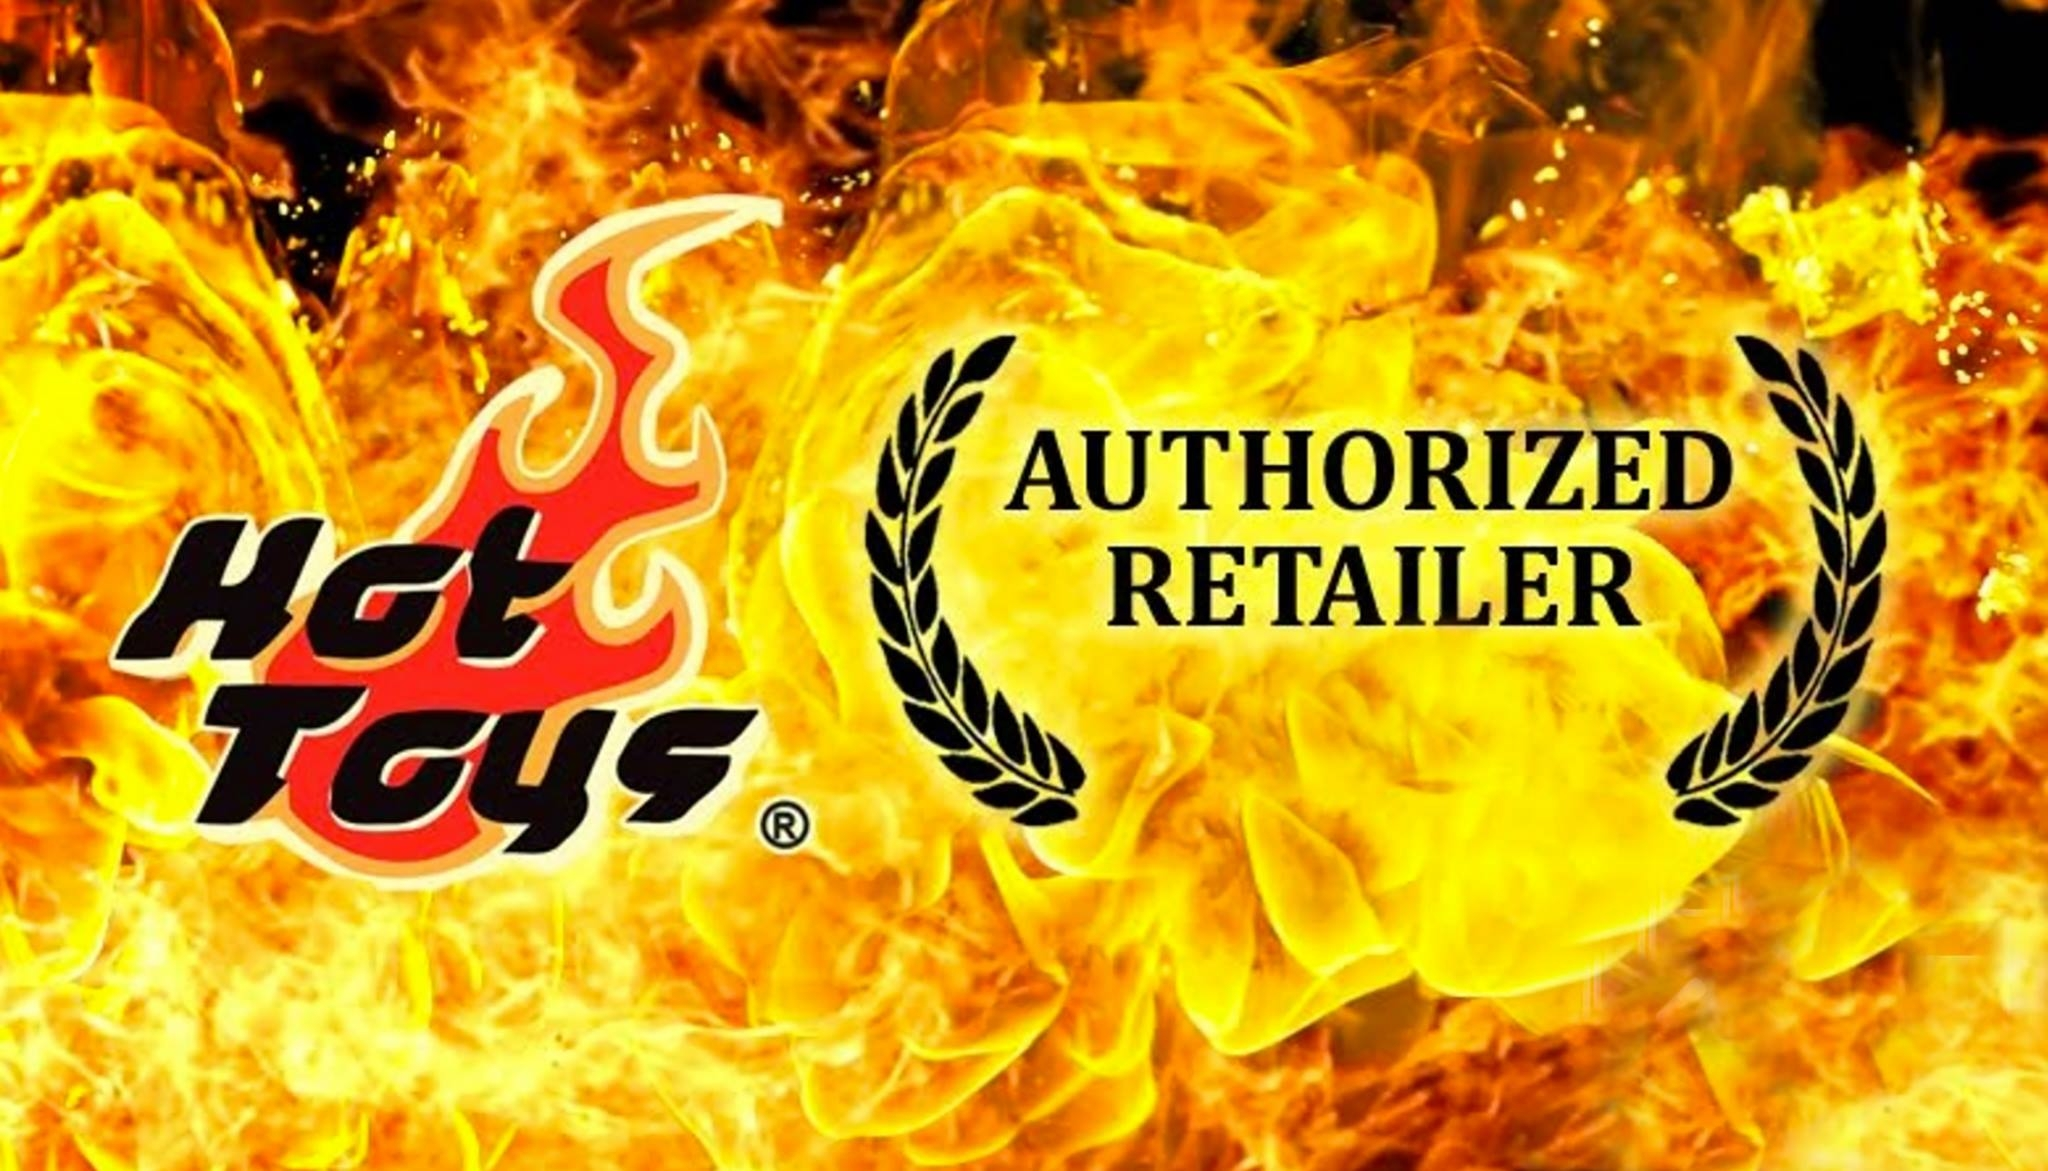 Hot Toys Authorized Retailer